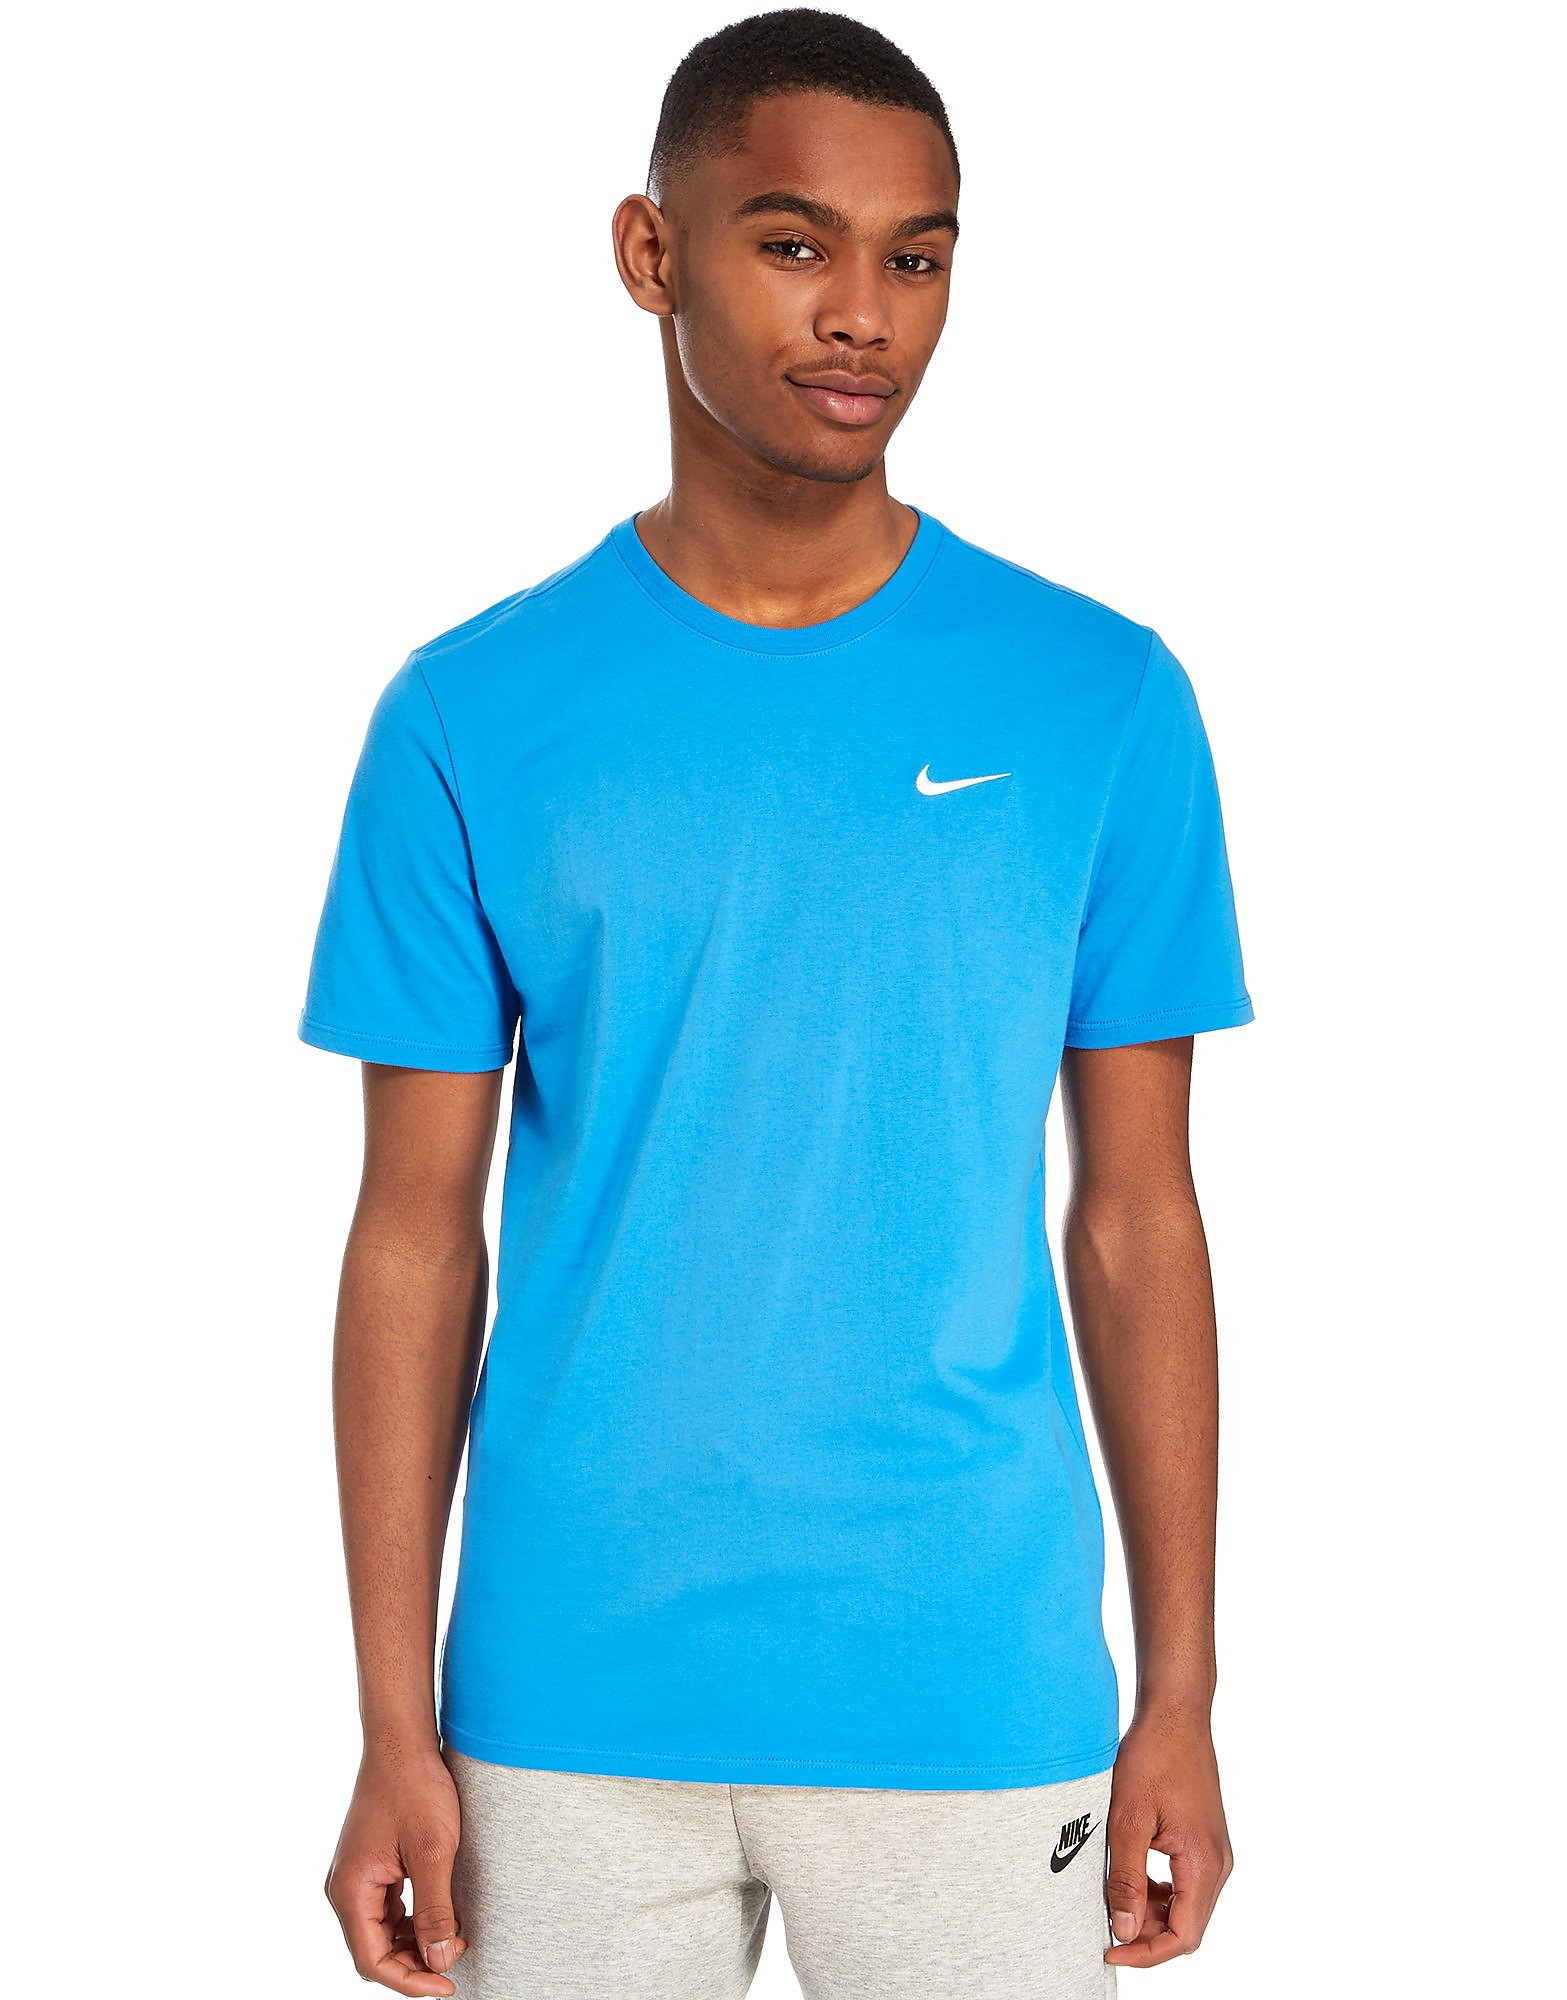 Nike Foundation T-Shirt